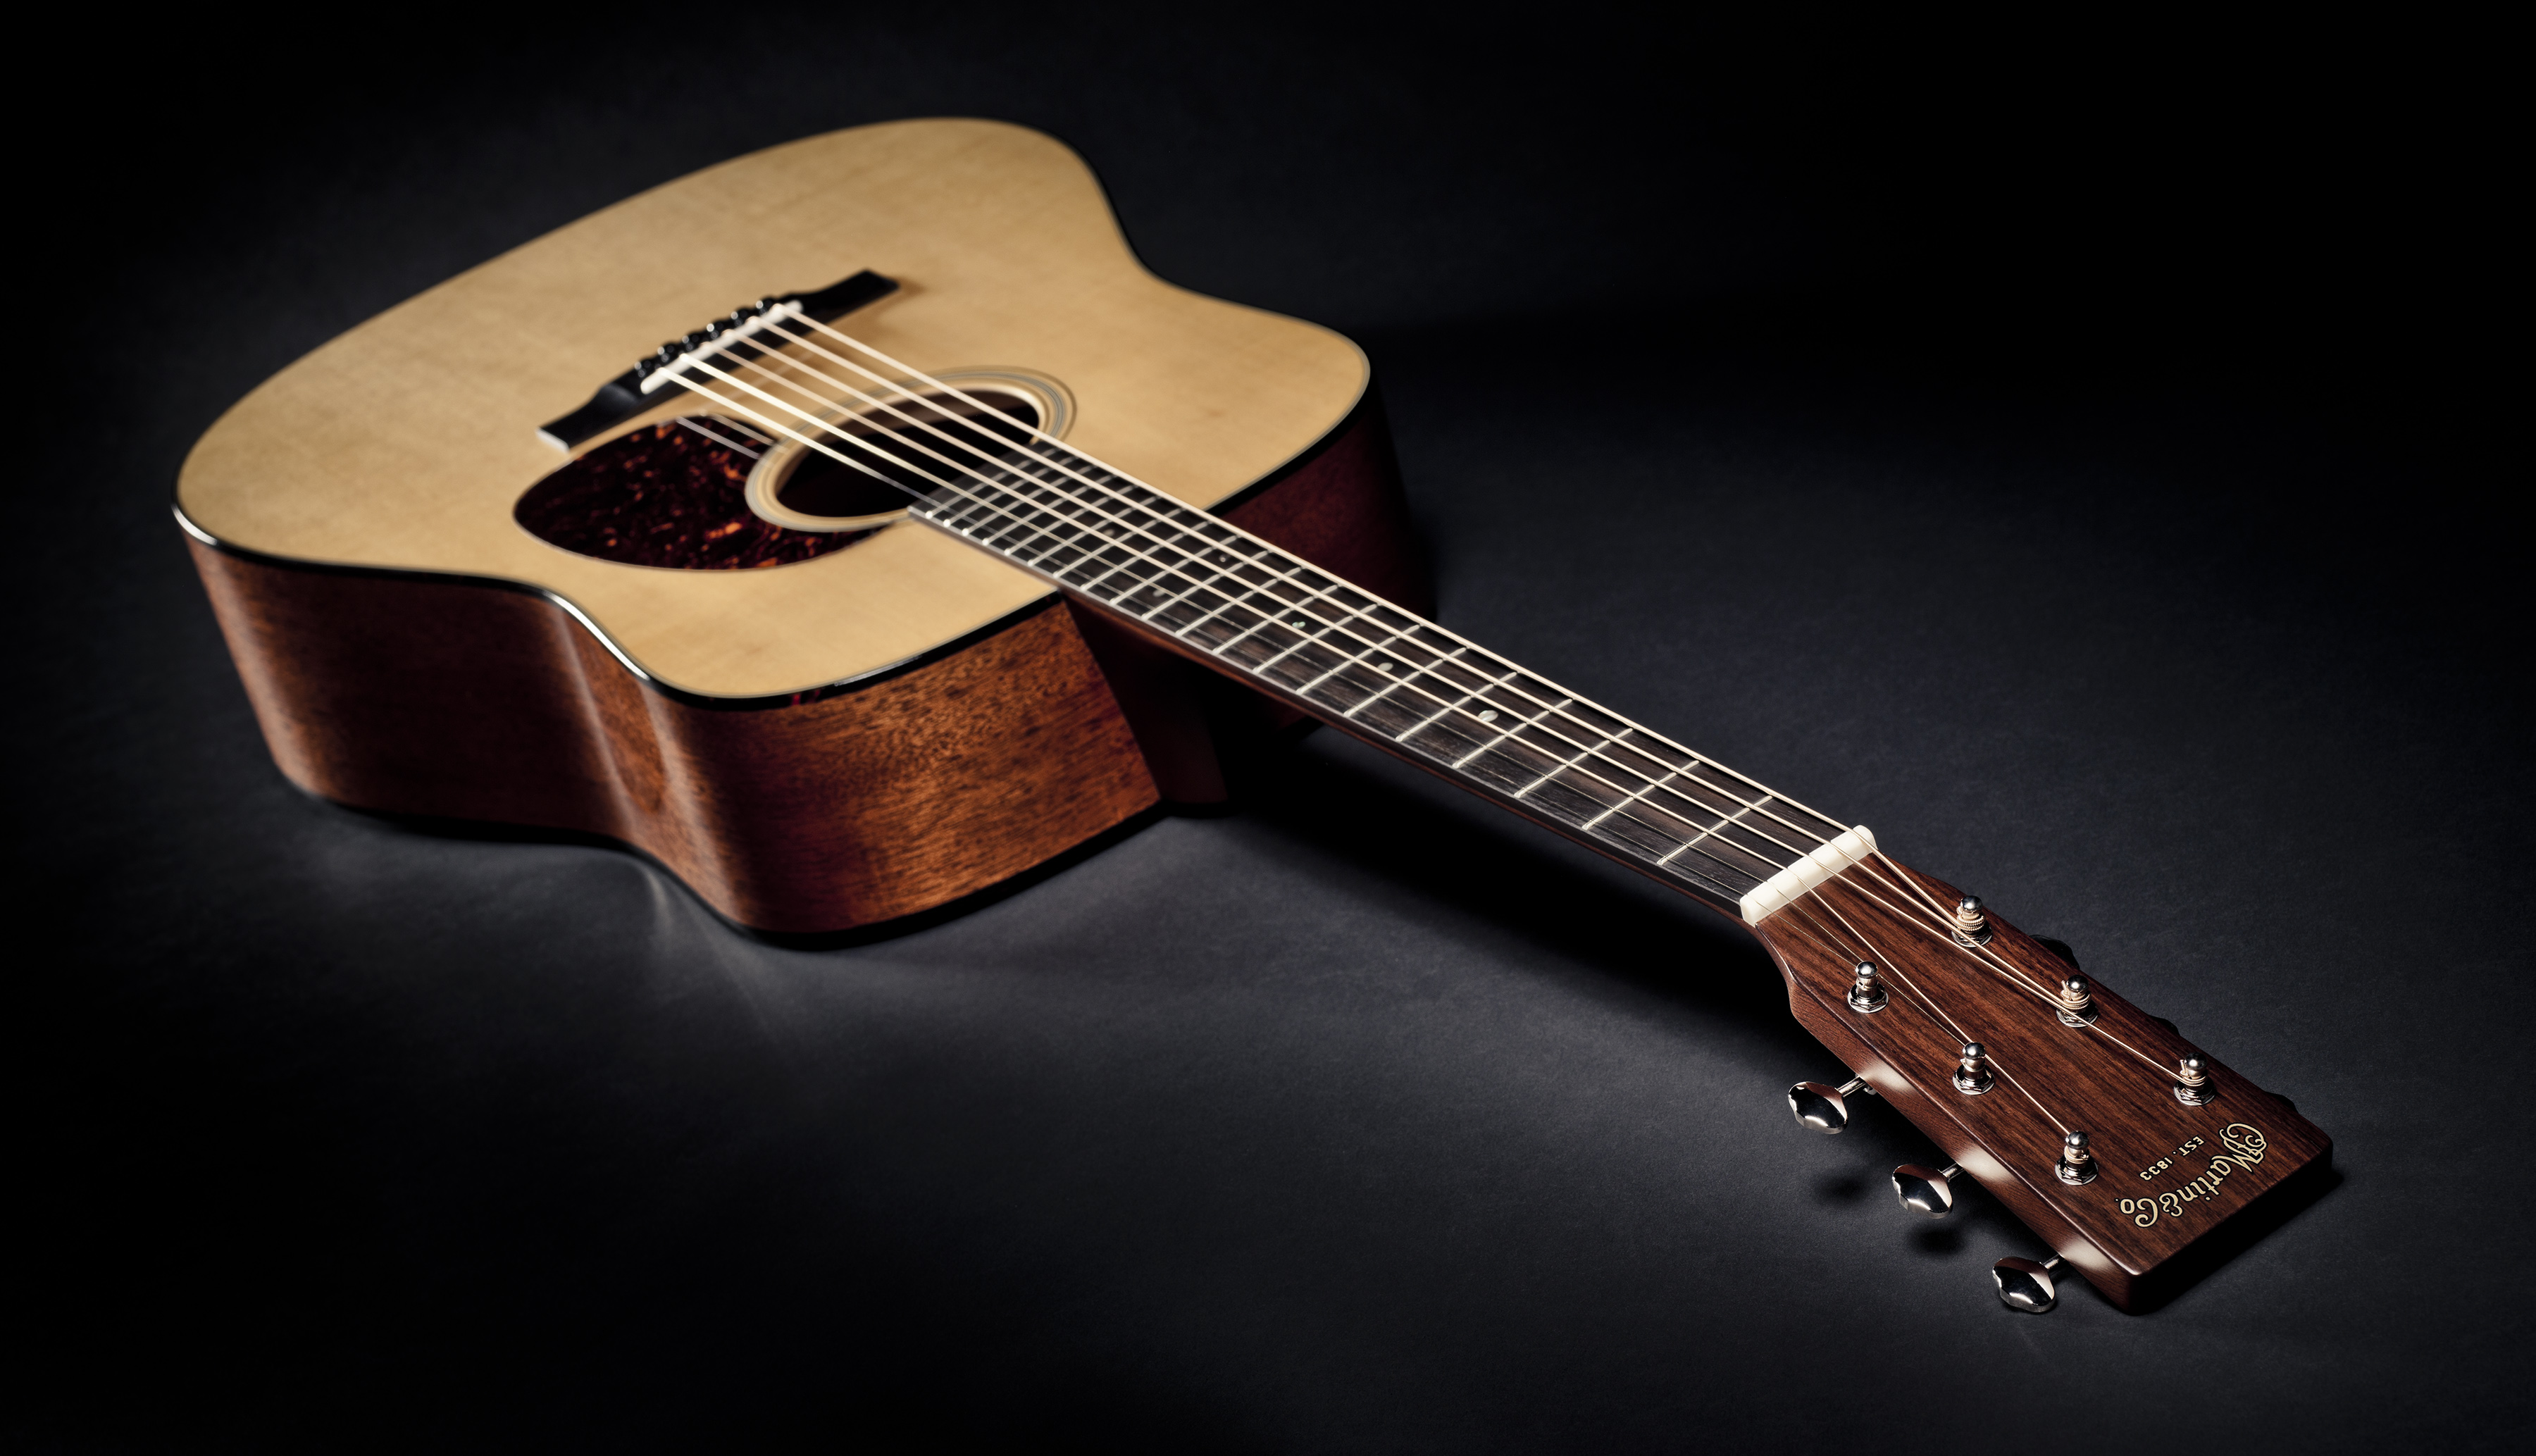 images/stories/martin guitars.jpg